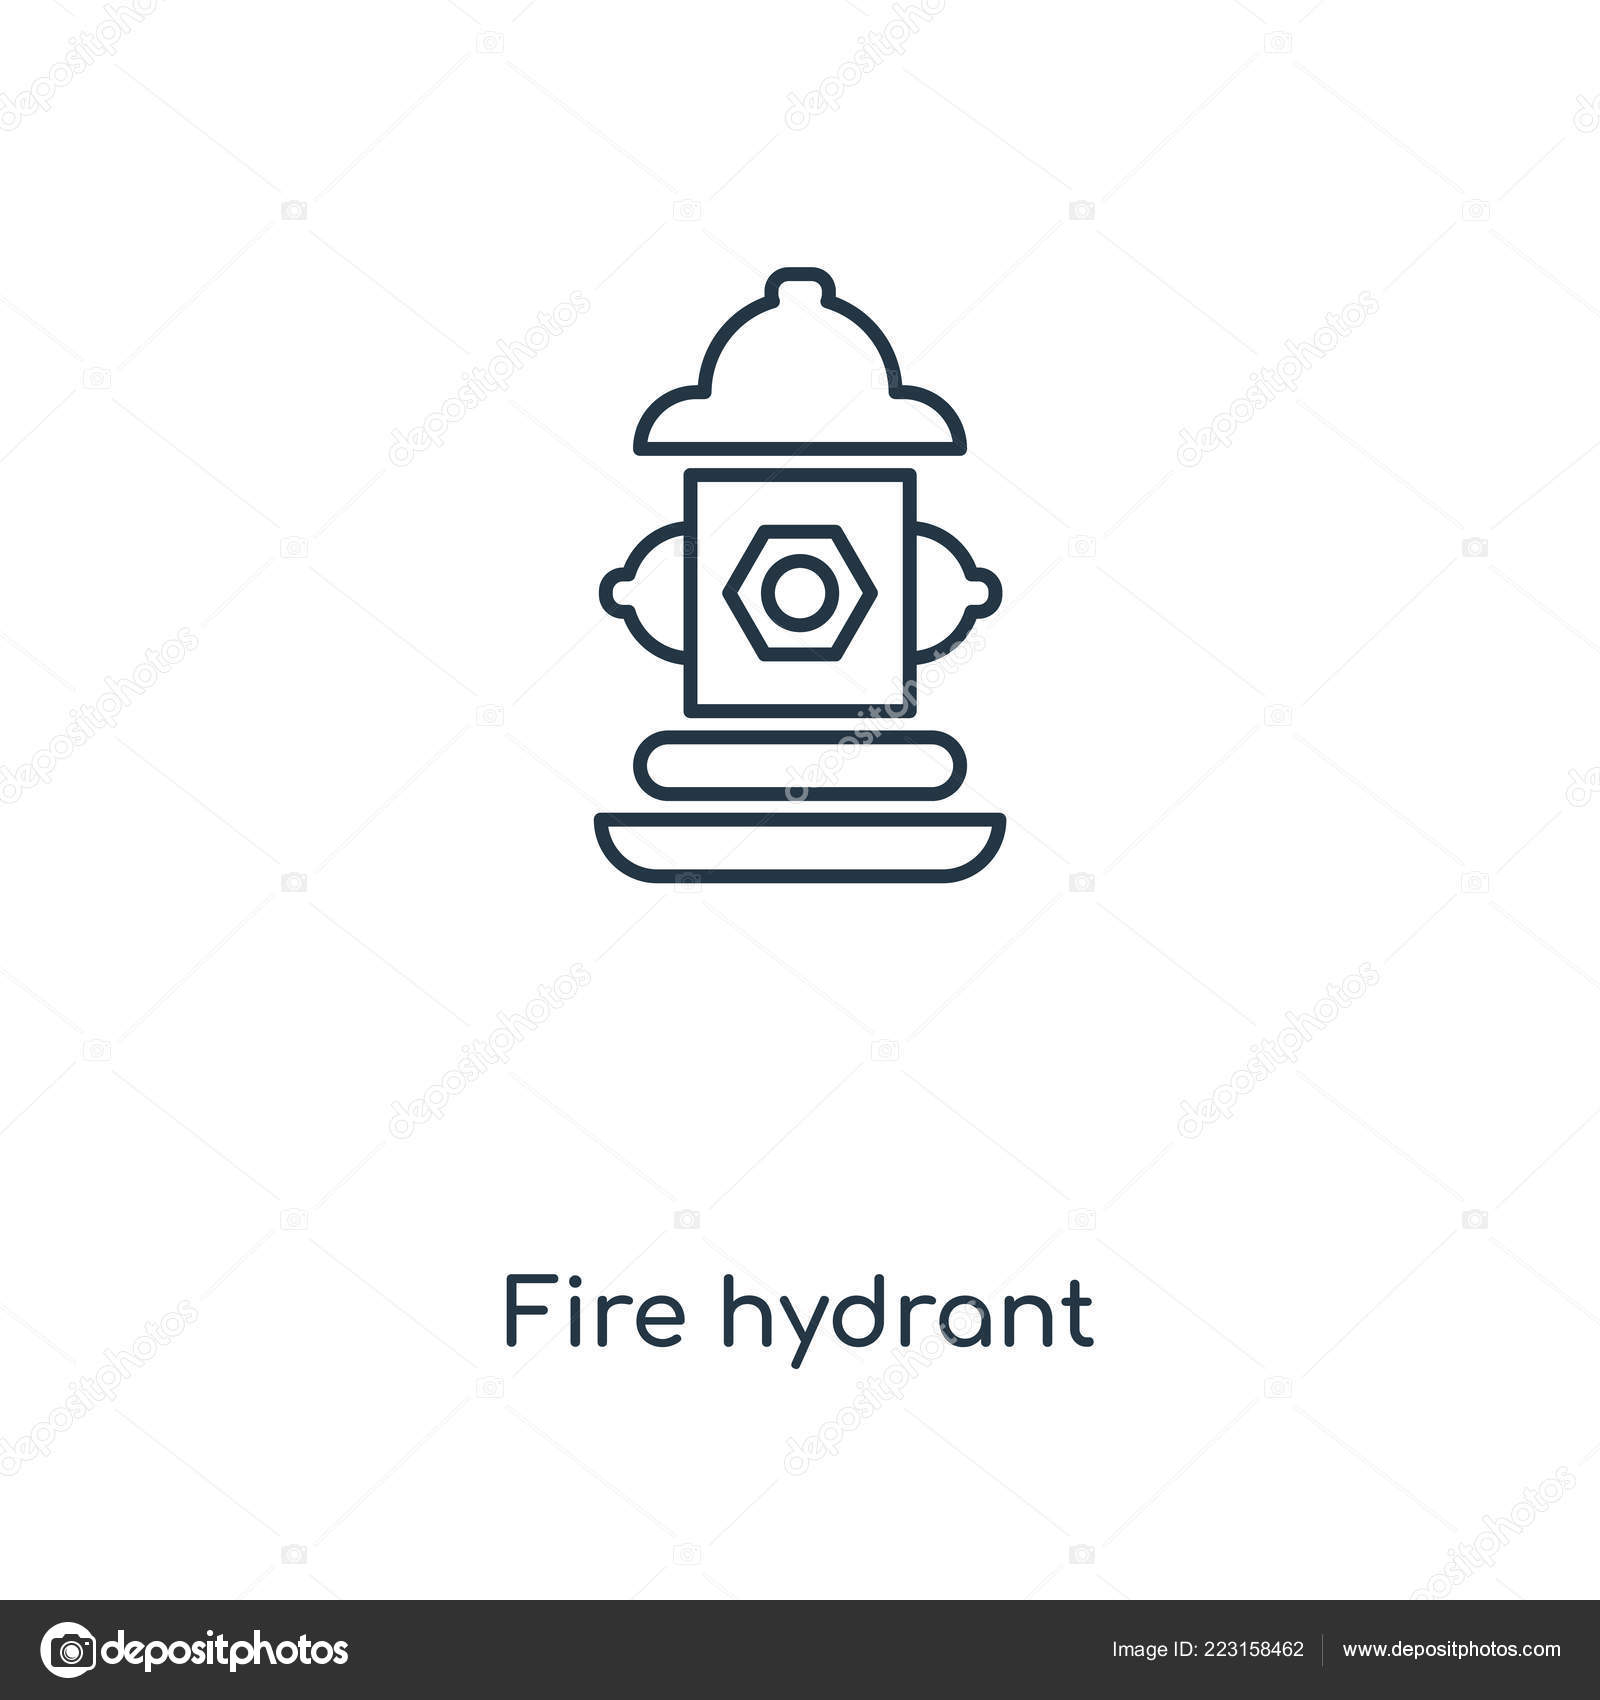 Fire Element Symbol Outline Wiring Diagrams Dilznoofus39s Tessellation Book Hydrant Concept Line Icon Linear Rh Depositphotos Com Air